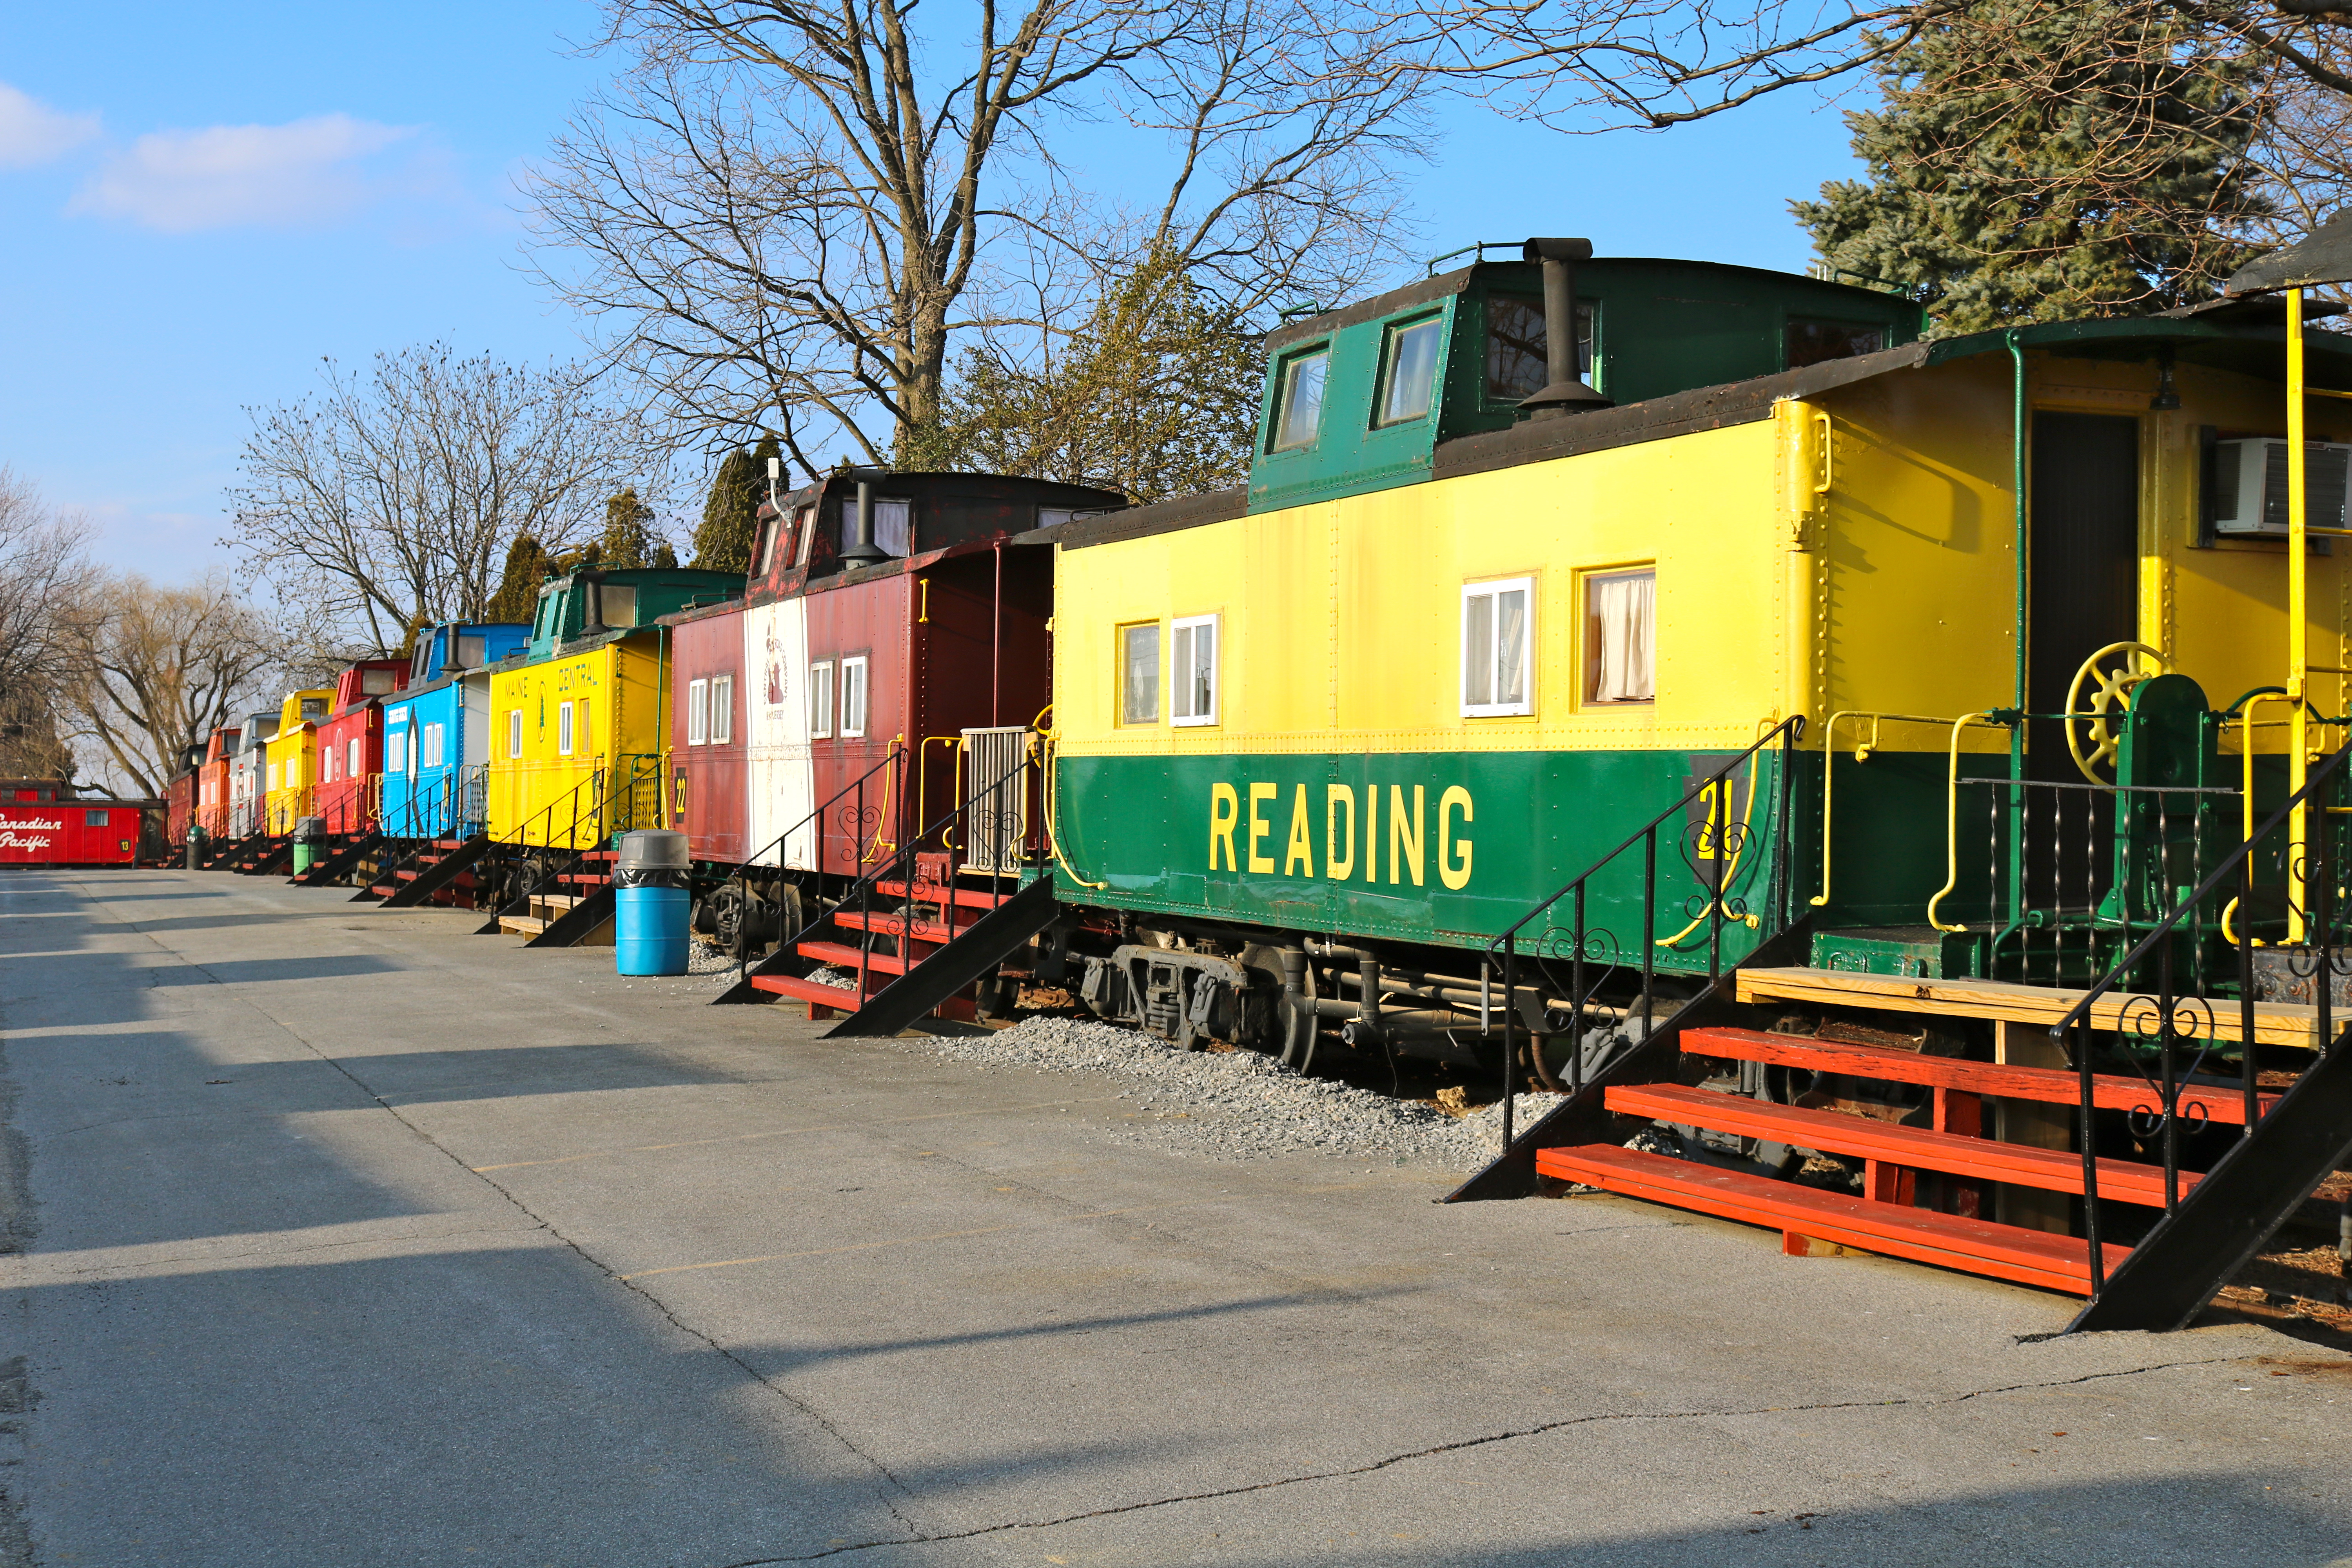 row of colorful cabooses in the daytime